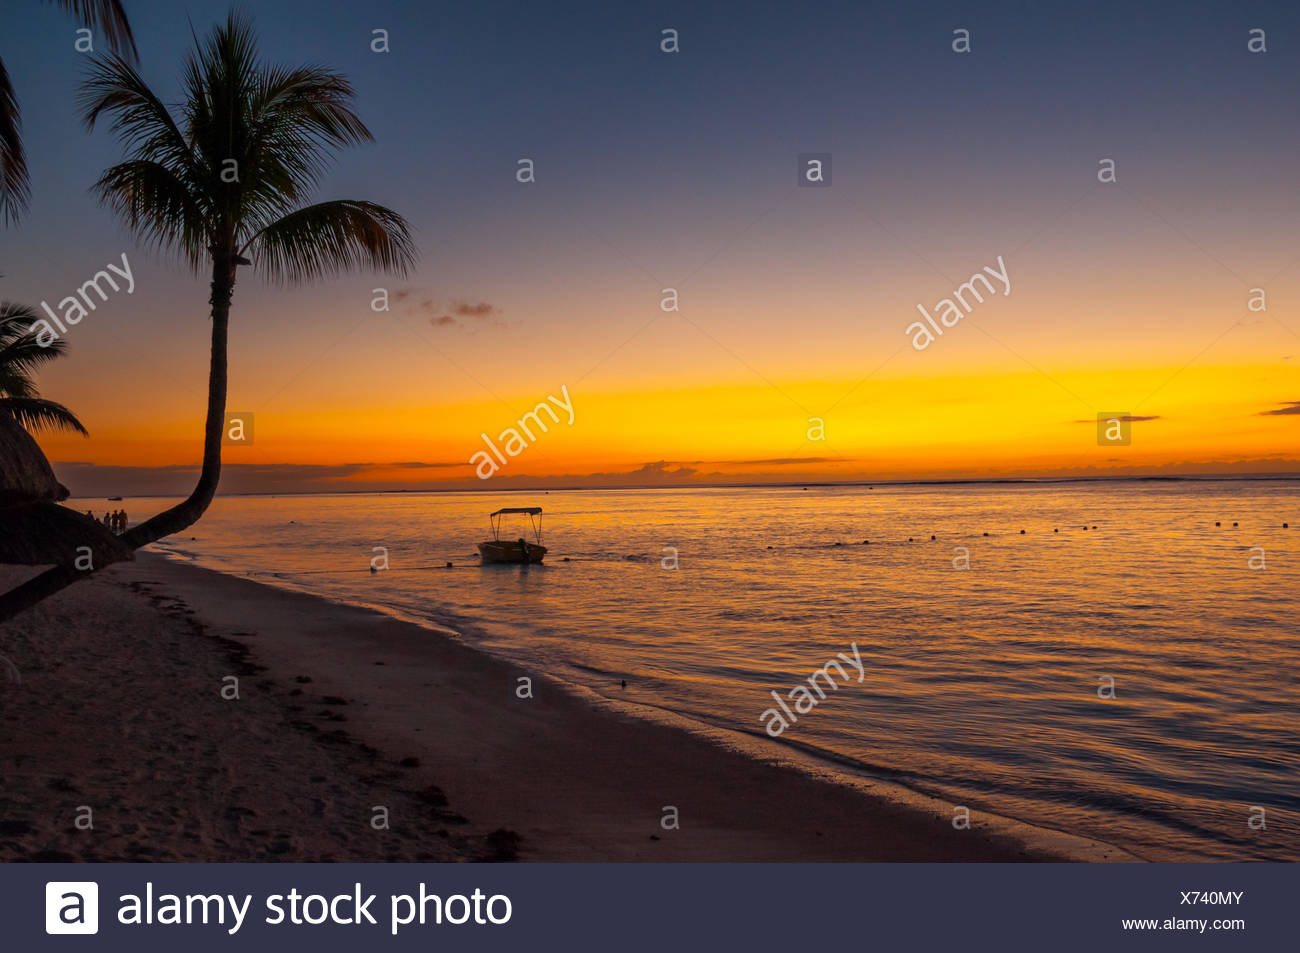 Sunset in Mauritius - Stock Image